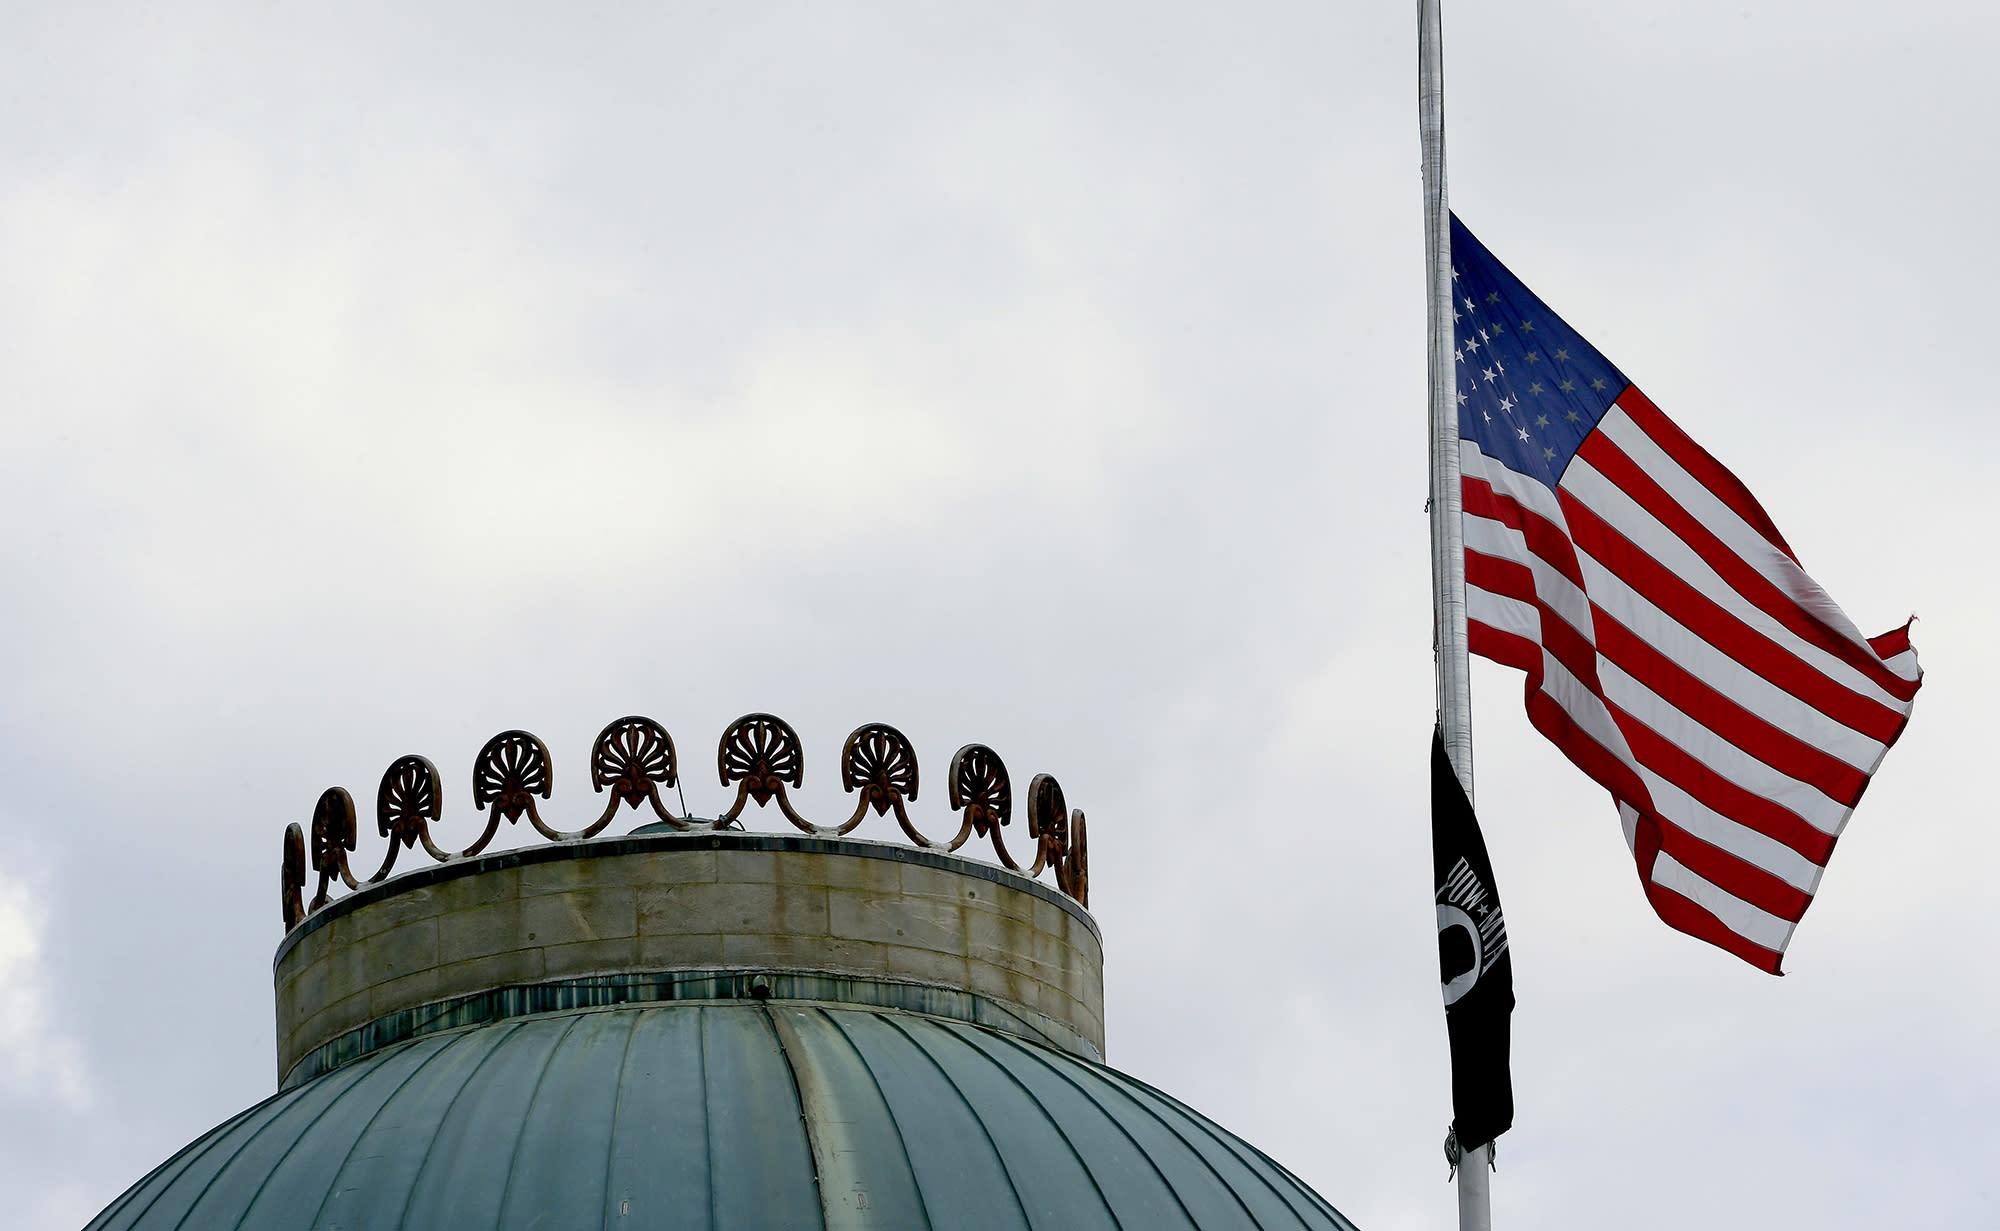 <p>The United States flag flies at half-staff over the State Capitol in Raleigh, N.C., Wednesday, July 12, 2017, following the death of six Marines and a Navy sailor from Camp Lejeune, who were among the 16 service members killed Monday when their plane crashed in a field in rural Mississippi. The plane was a KC-130T, a tanker from Marine Aerial Refueling and Transport Squadron 452, a Marine Forces Reserve unit based in Fort Stewart, N.Y. (Photo: Gerry Broome/AP) </p>